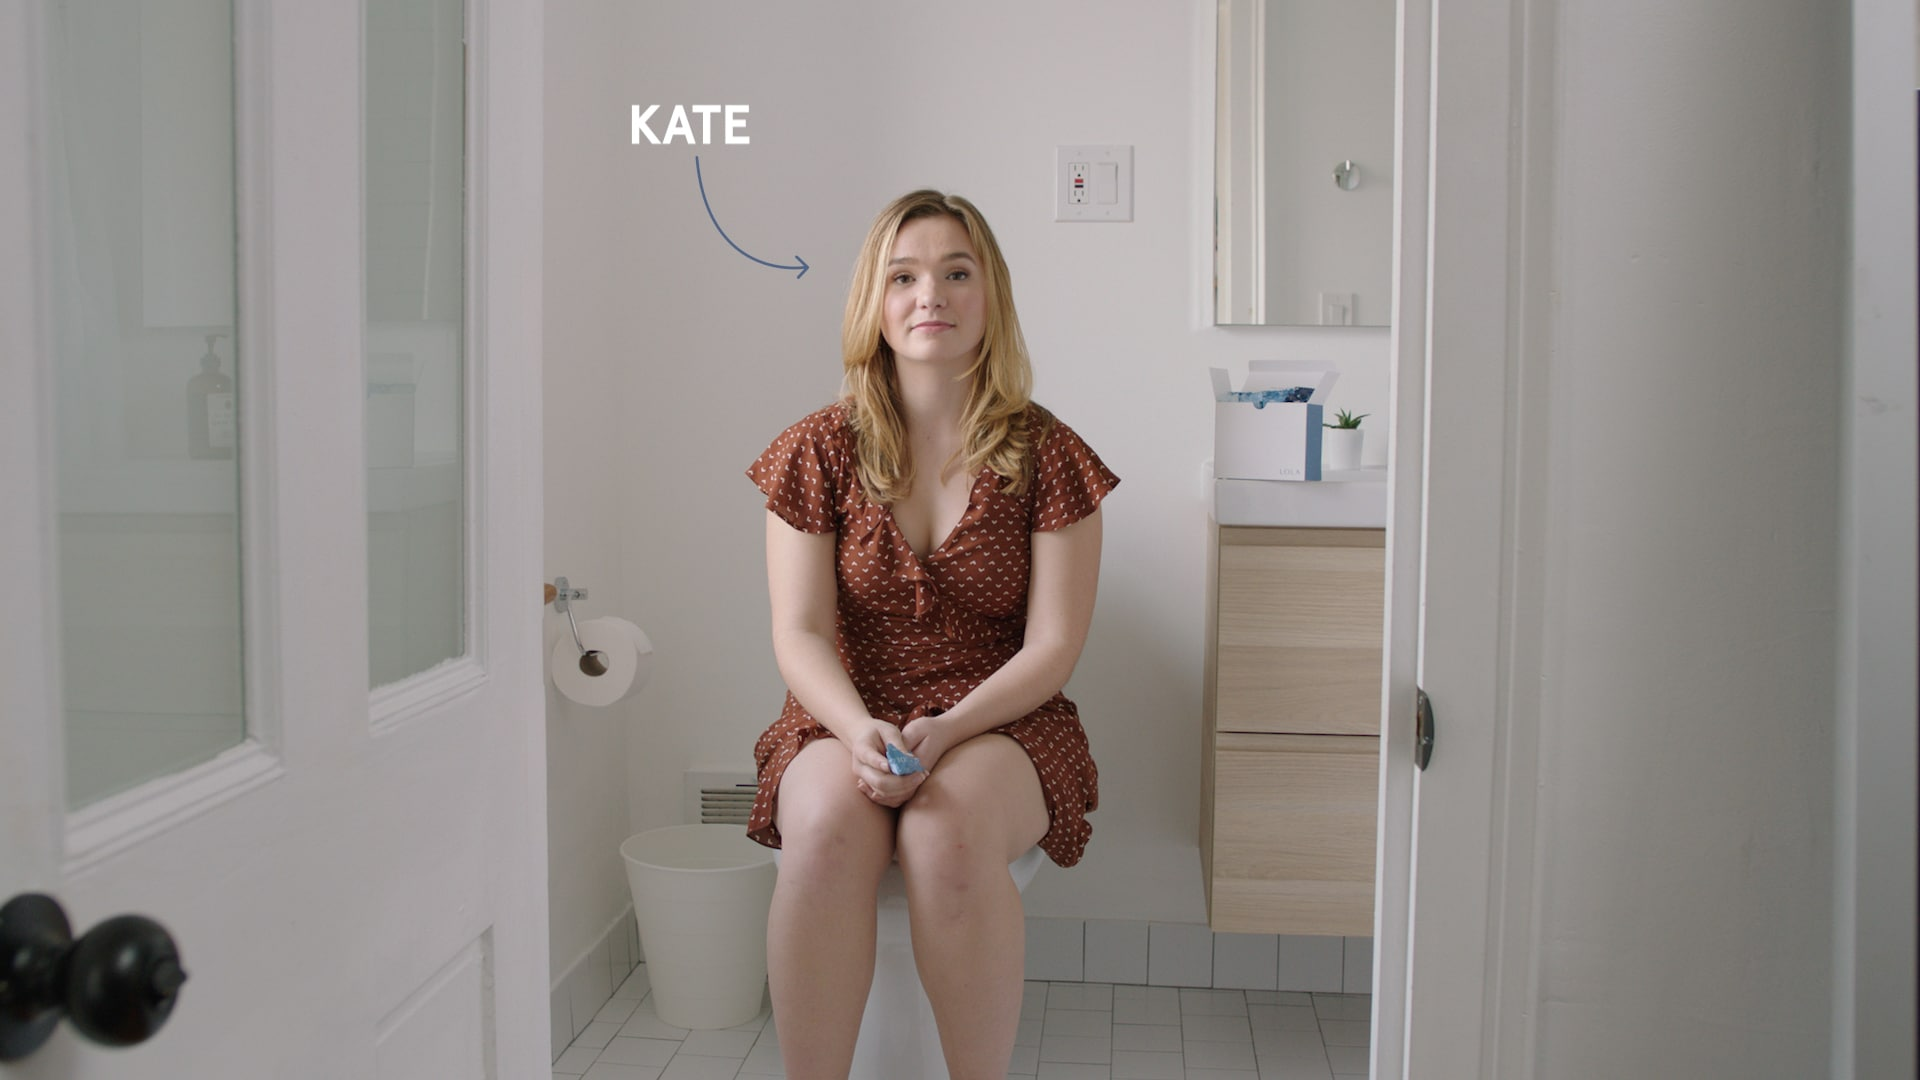 Kate on toilet